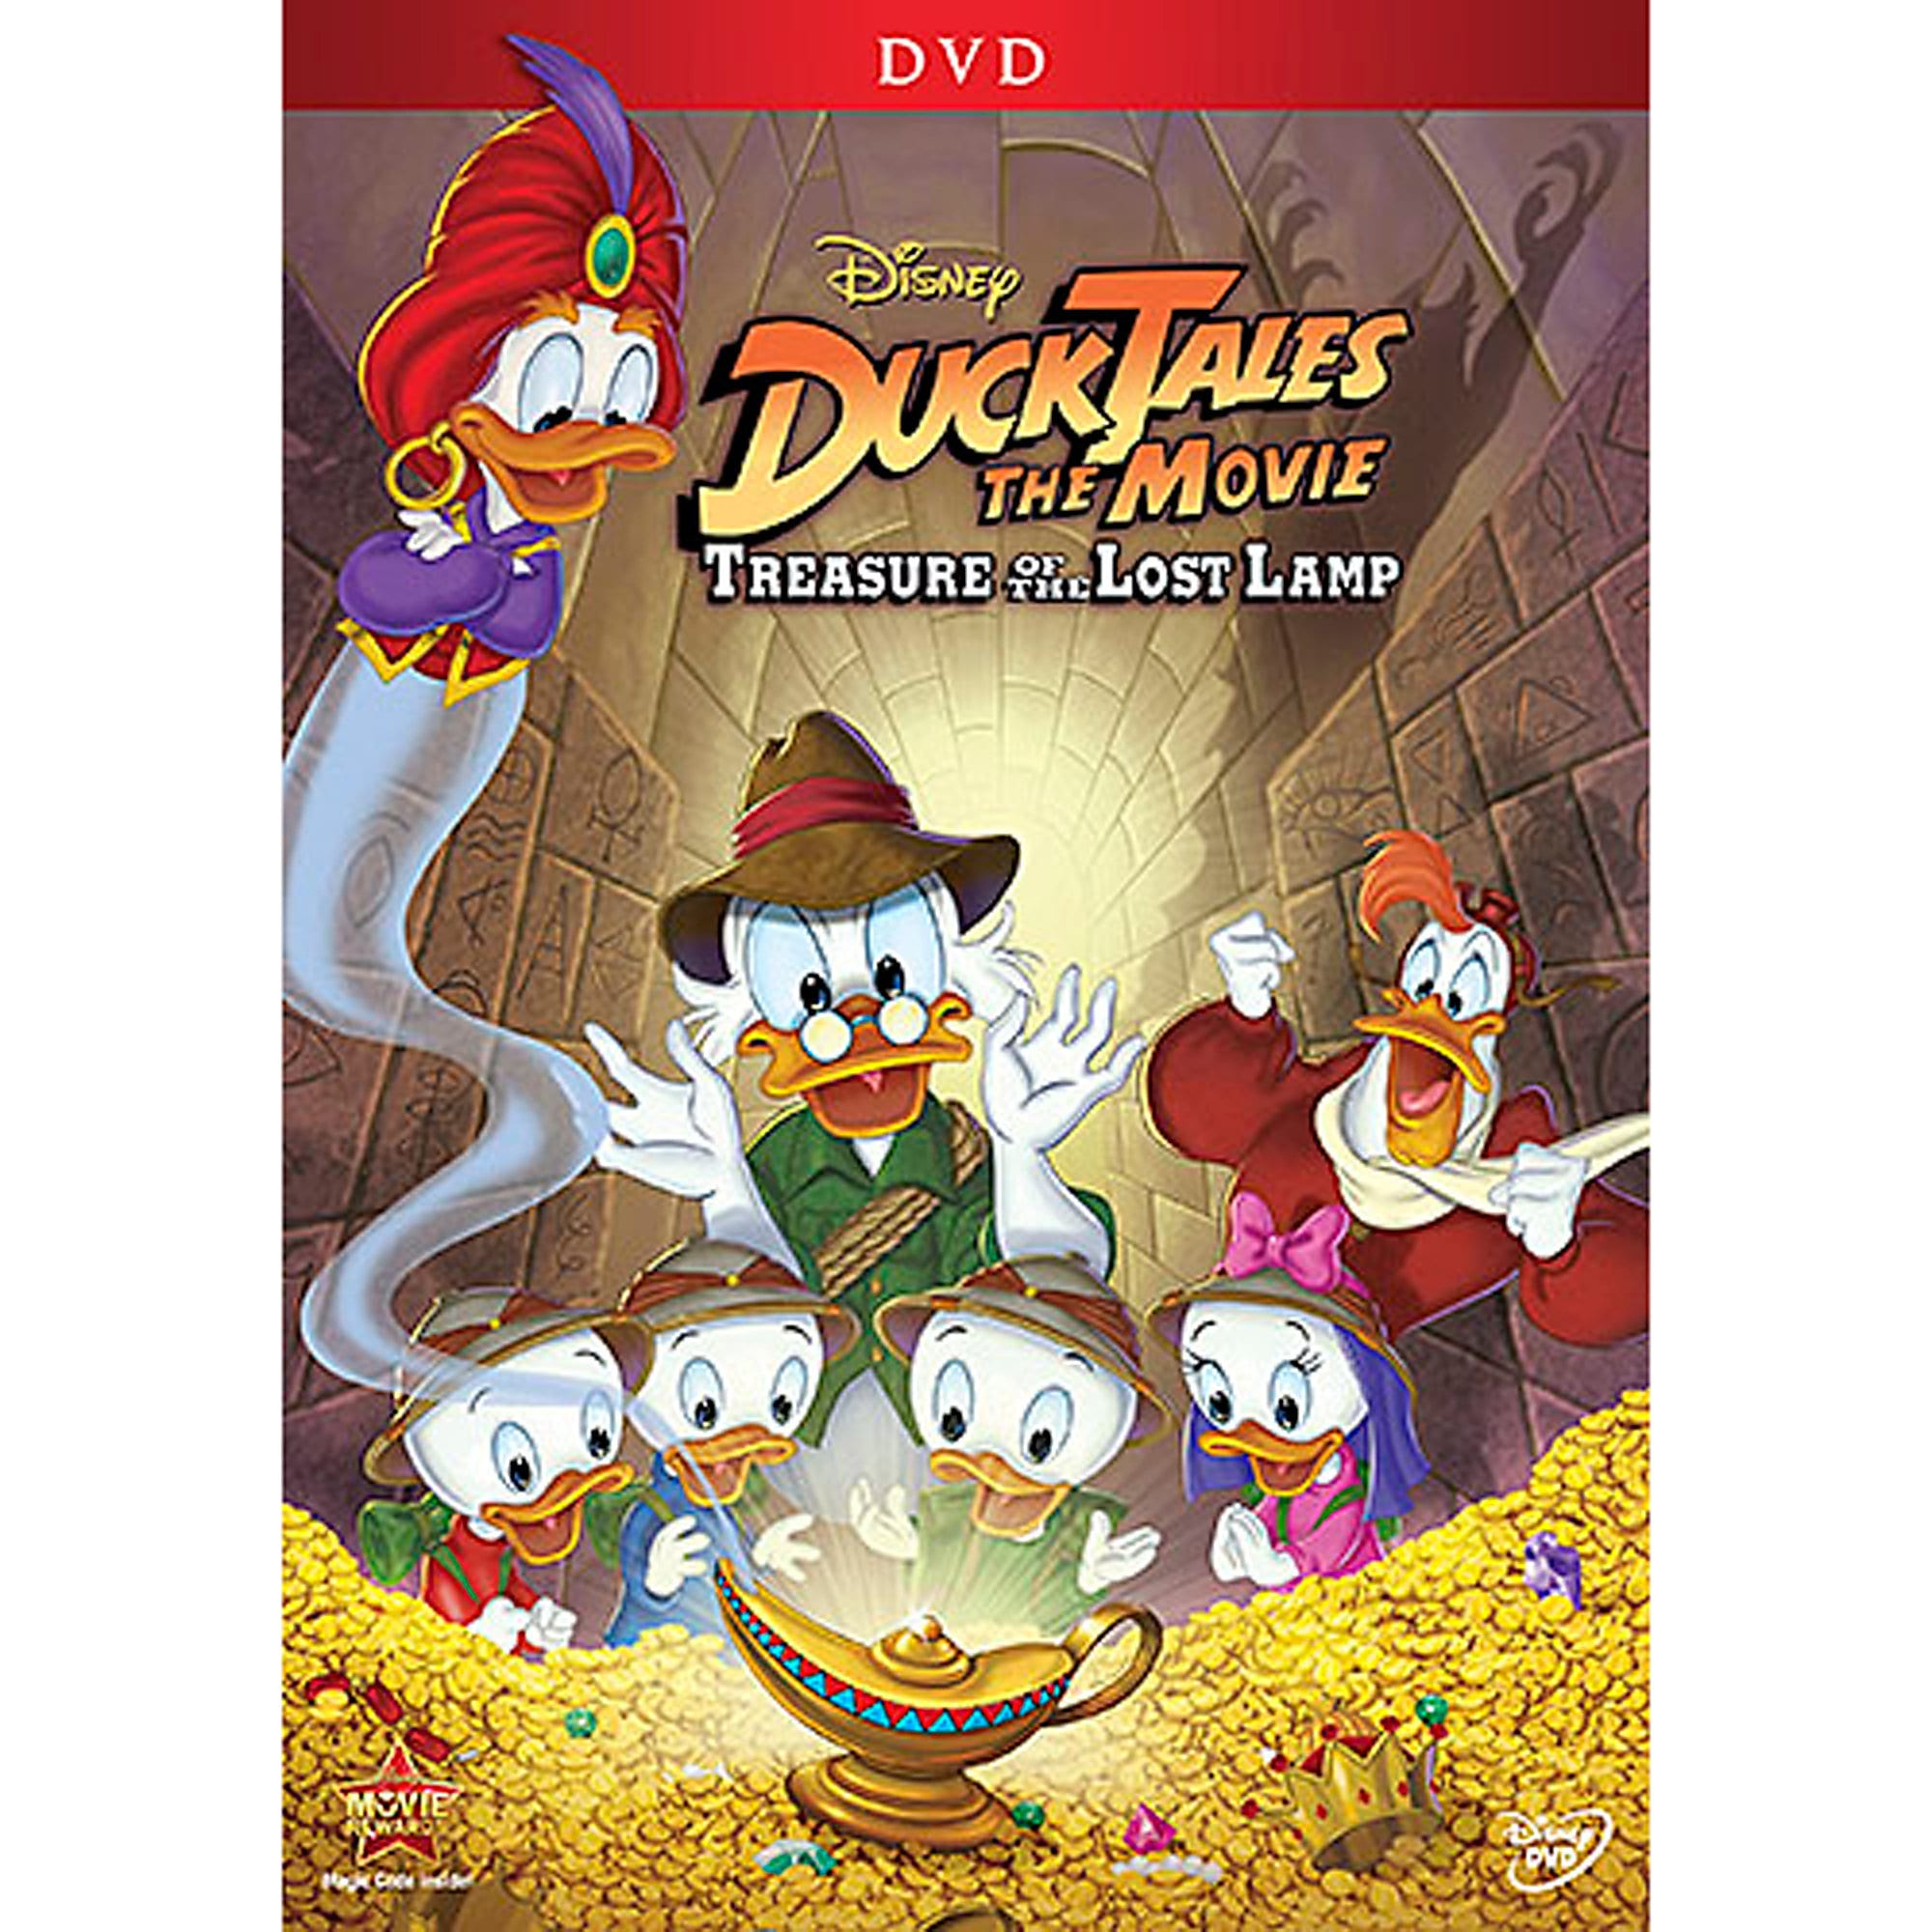 DuckTales the Movie: Treasure of the Lost Lamp DVD | shopDisney